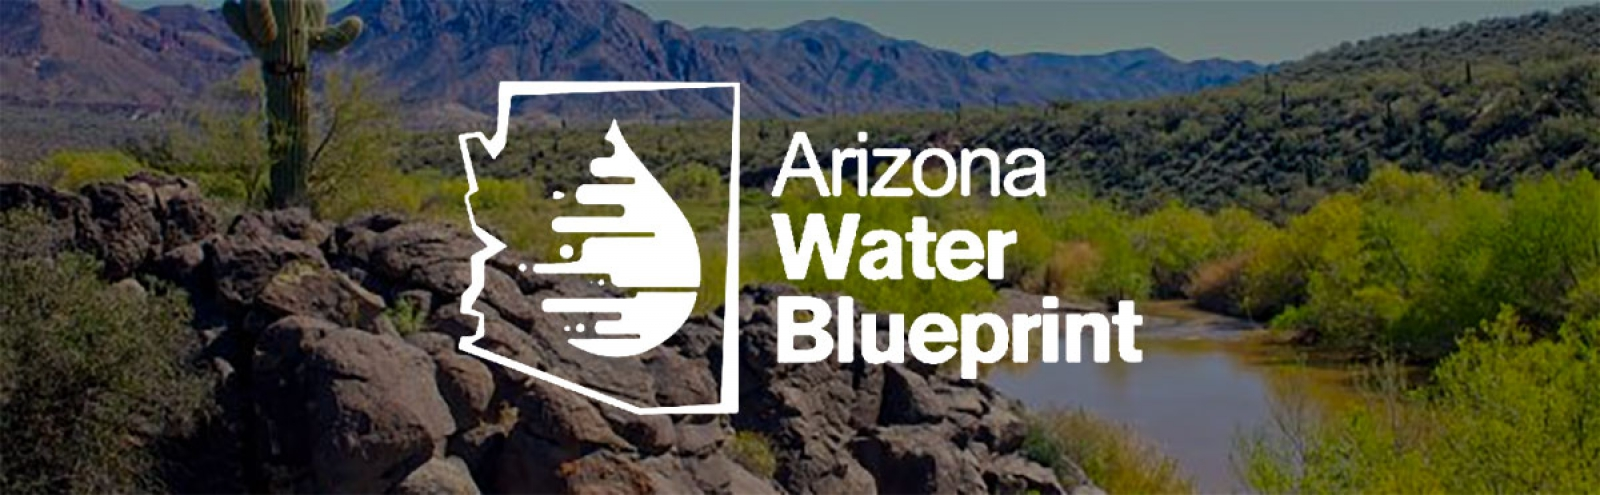 Arizona Water Blueprint Logo. A water drop surrounded by a silhouette of the state of Arizona